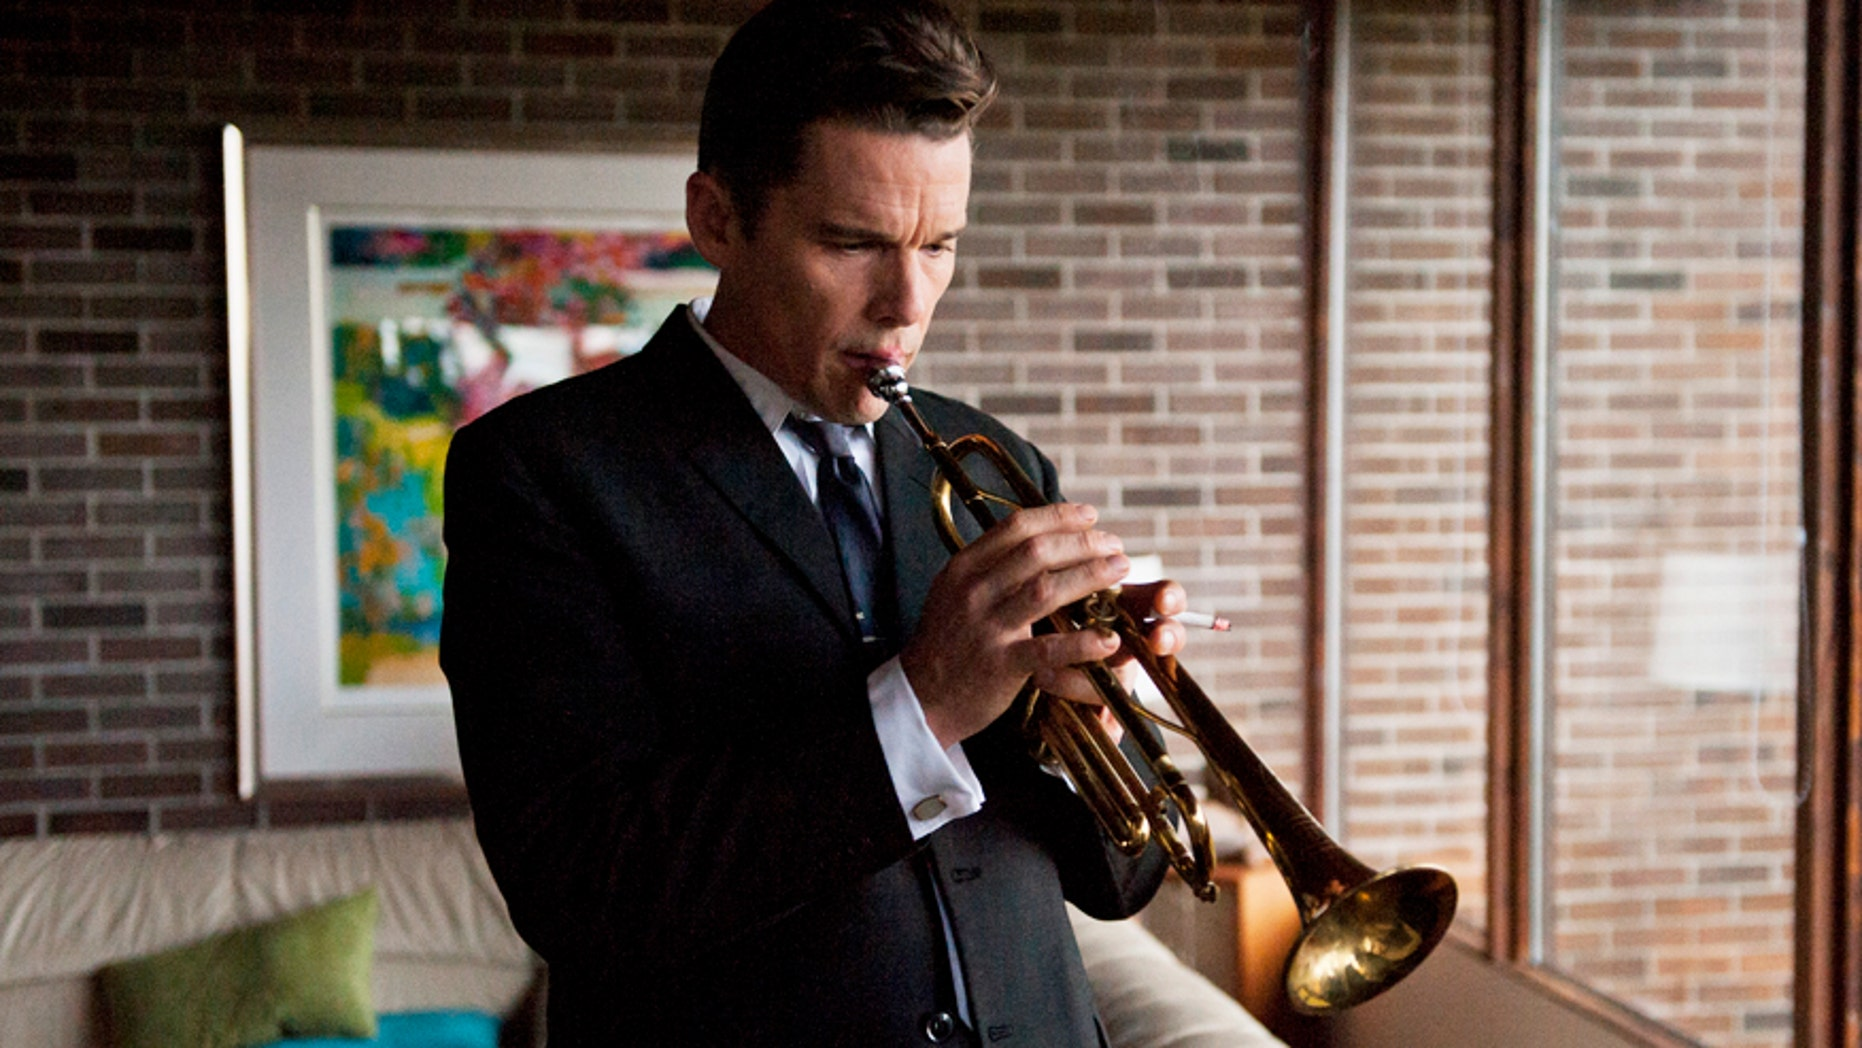 """Ethan Hawke plays Chet Baker in Robert Budreau's, """"Born to Be Blue."""" Courtesy of Caitlin Cronenberg. An IFC Films release"""